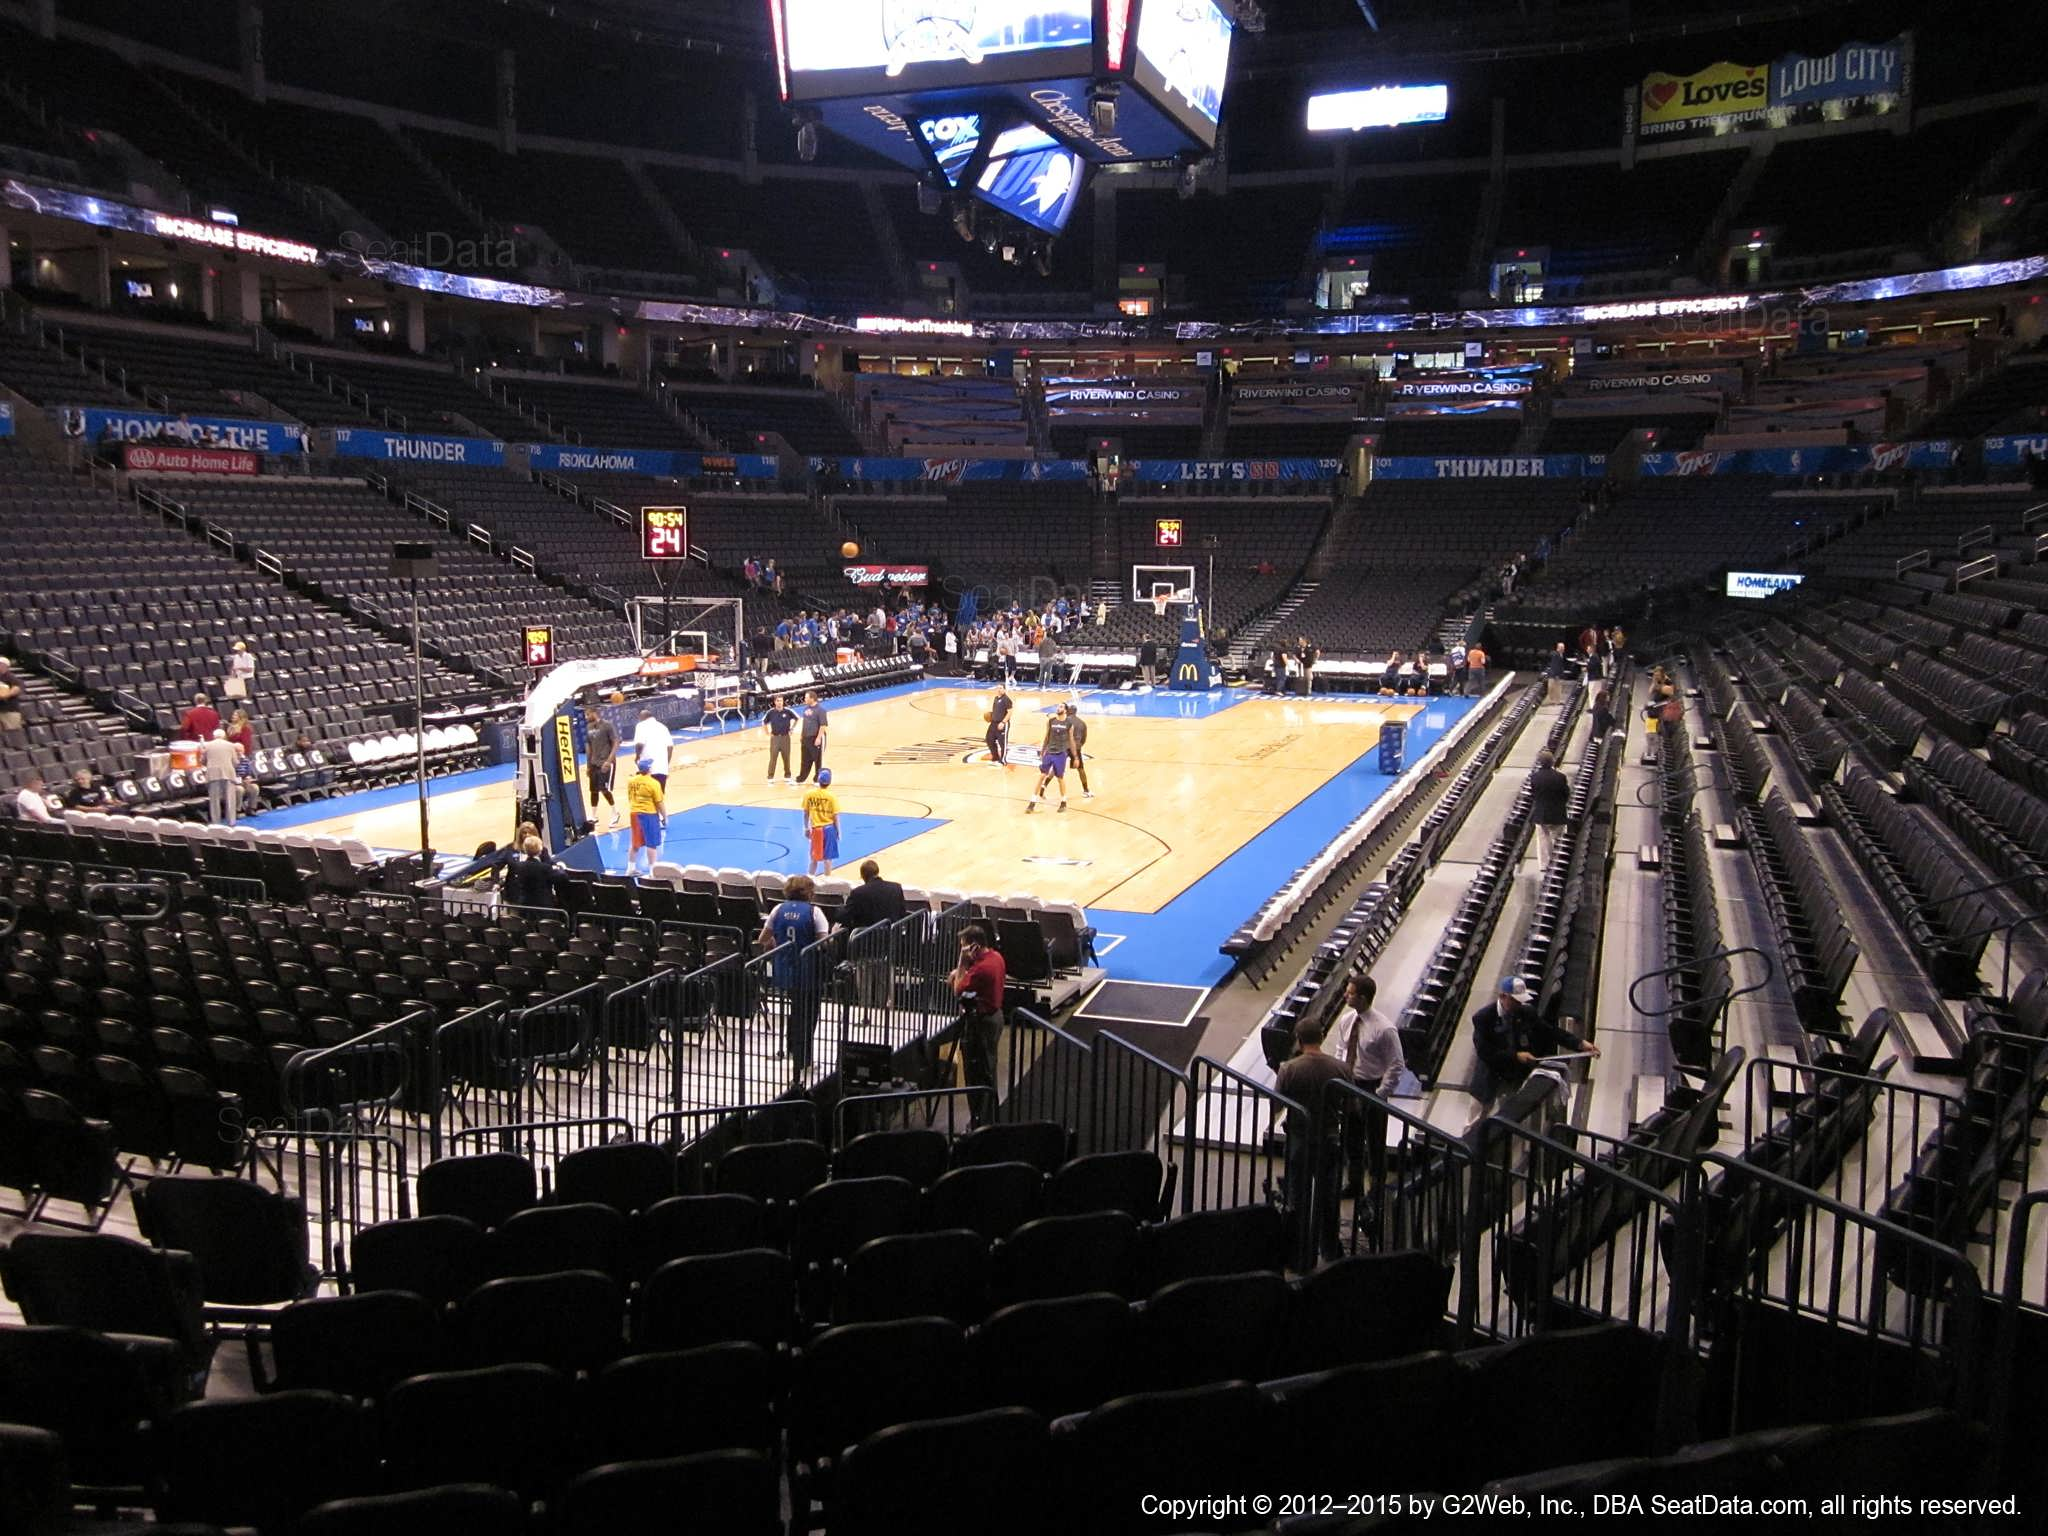 Seat view from section 109 at Chesapeake Energy Arena, home of the Oklahoma City Thunder